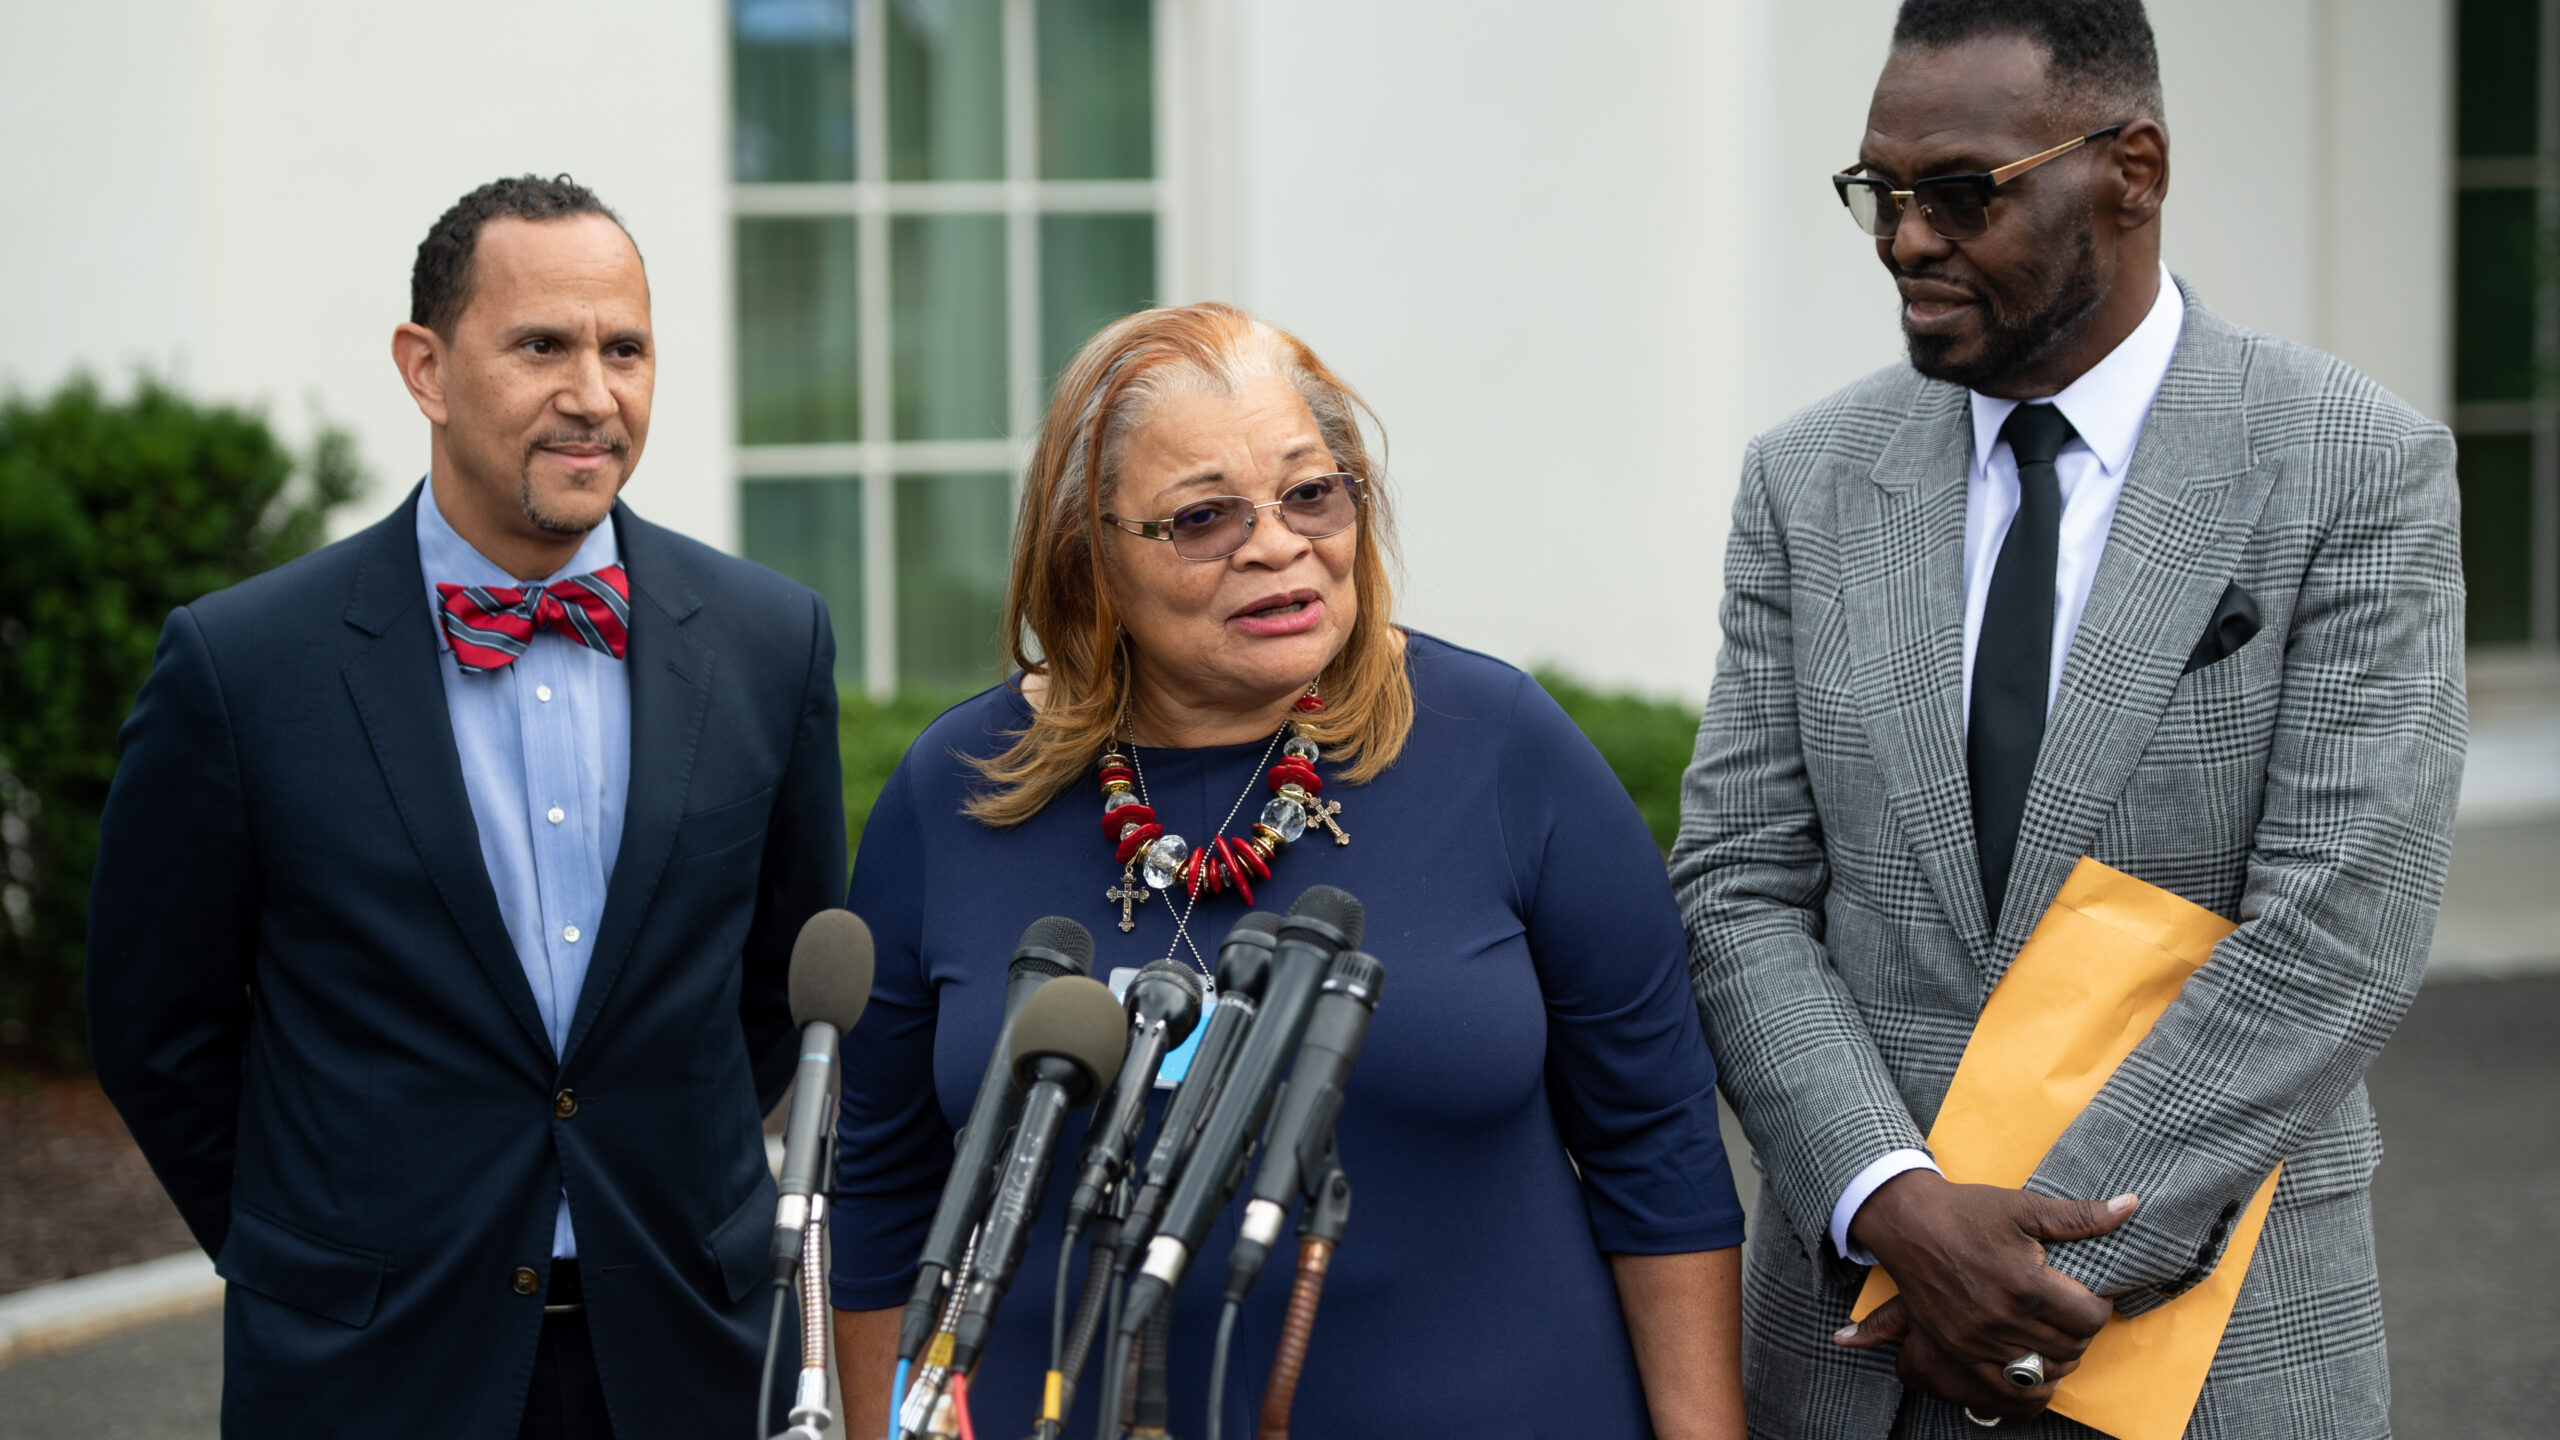 Dr. Alveda King Blasts Obama For Politicizing John Lewis Funeral: Leftists Will 'Grab At Any Opportunity'